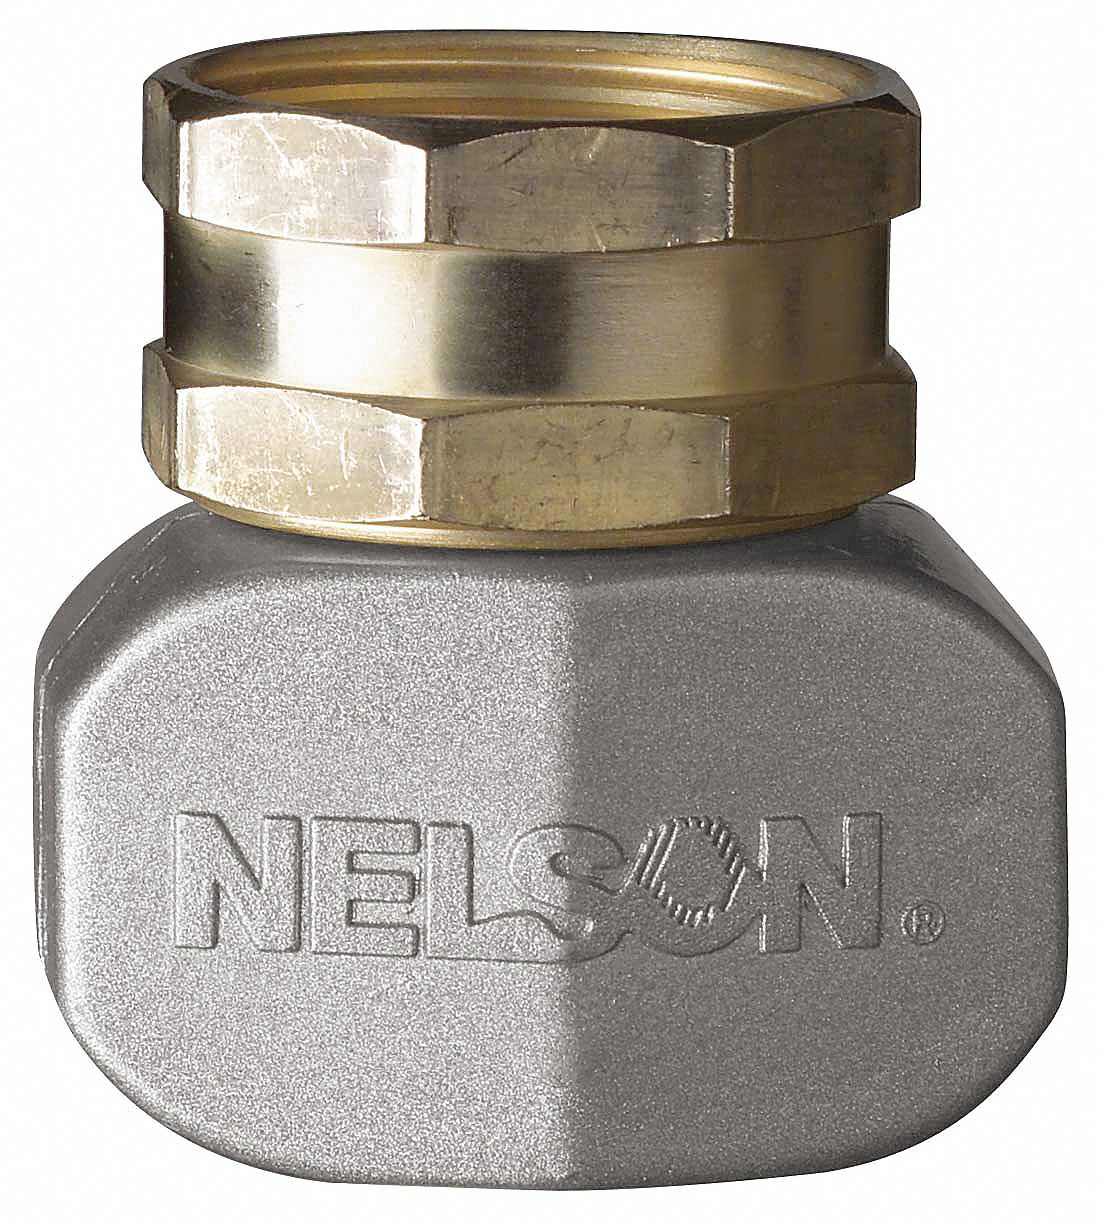 NELSON BrassMetal Hose End Repair Kit 58 to 34 GHT